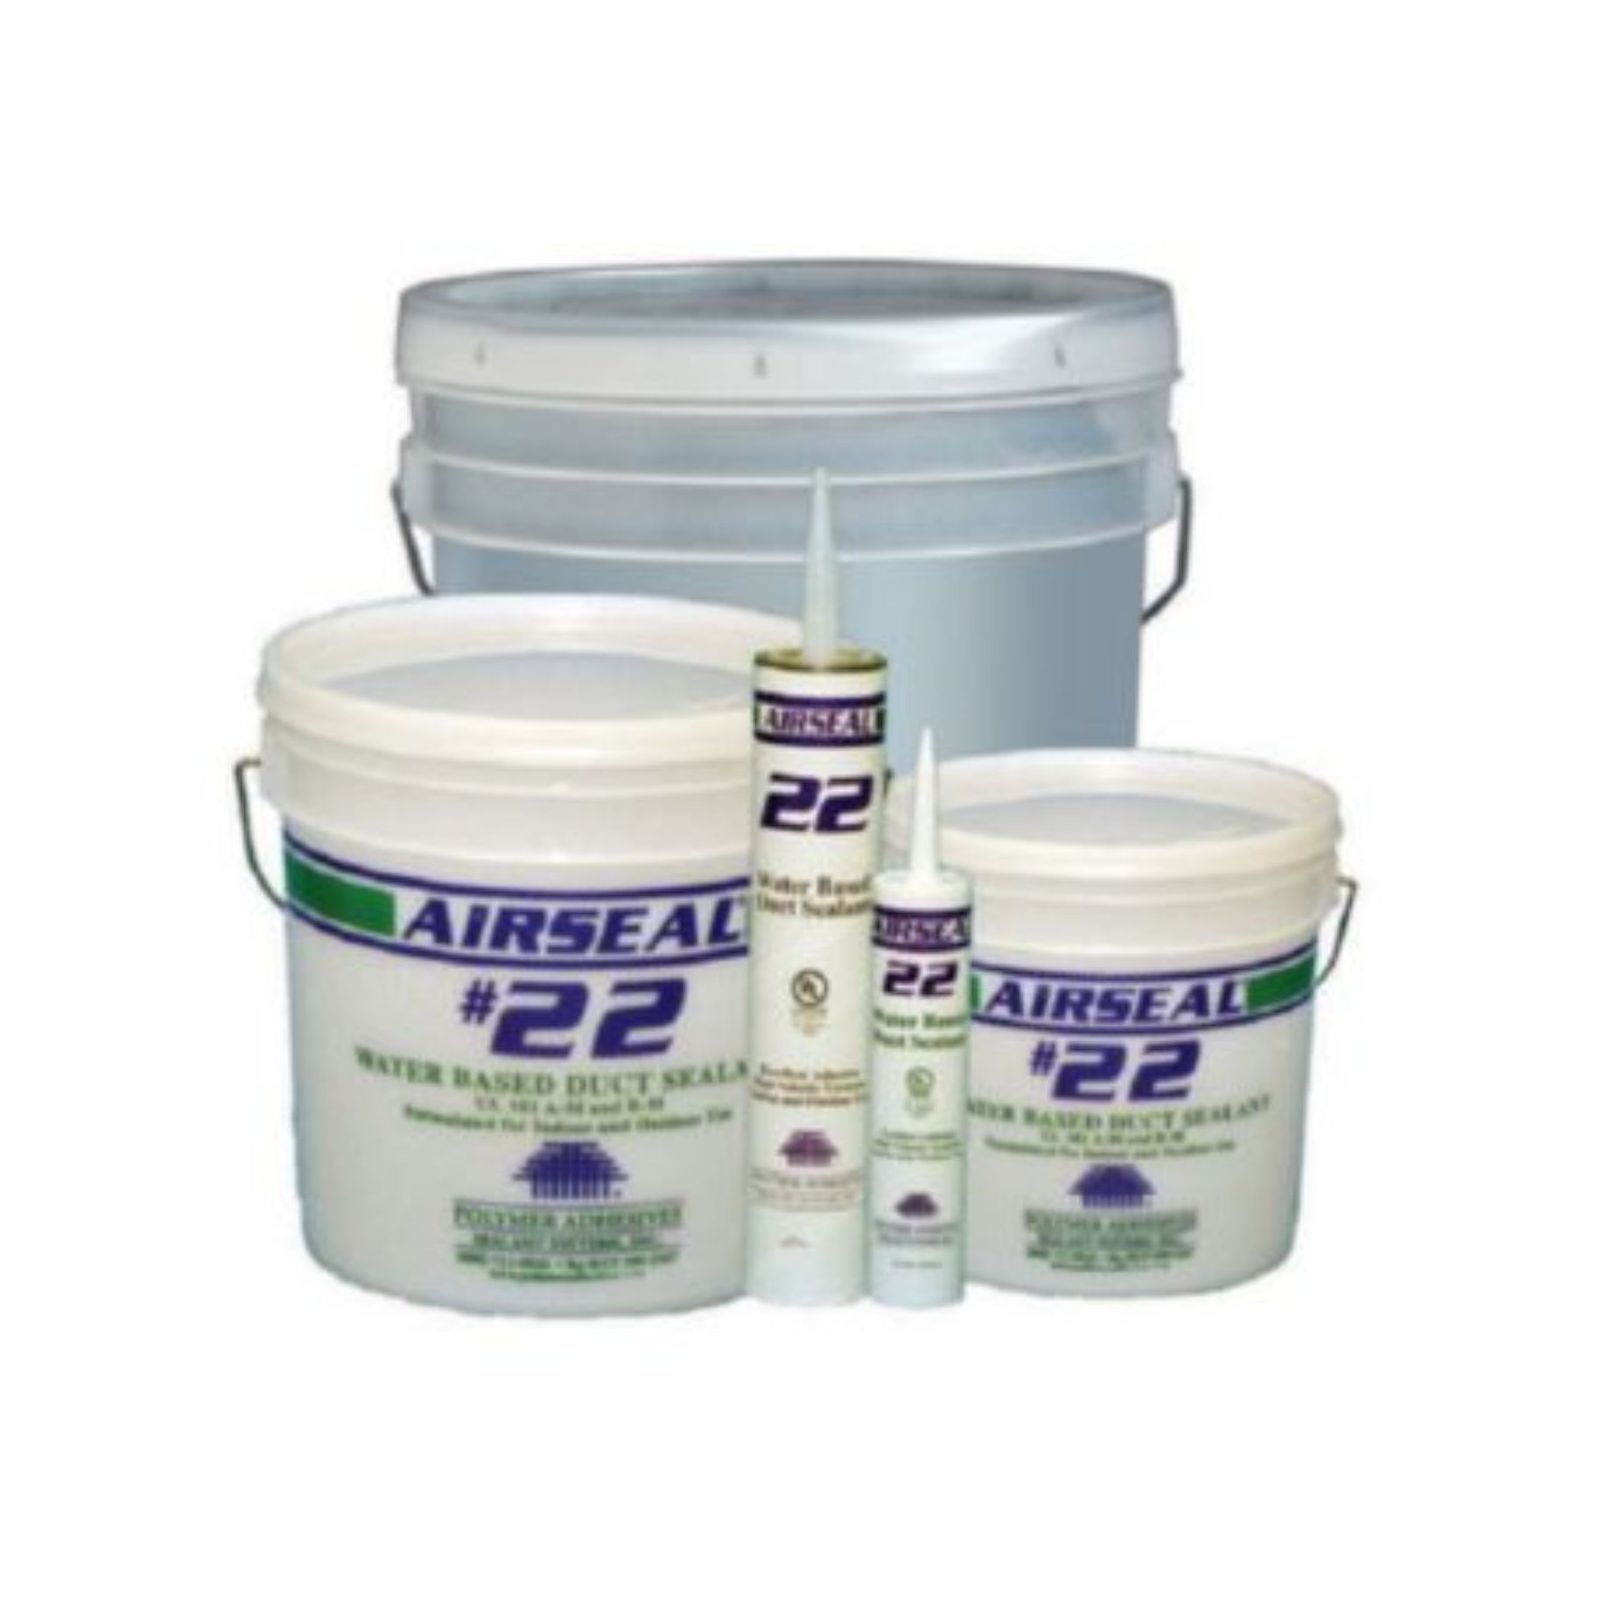 Polymer Adhesives AS22-1(W) - Airseal  - #22-1 White, Water Based Duct Sealant